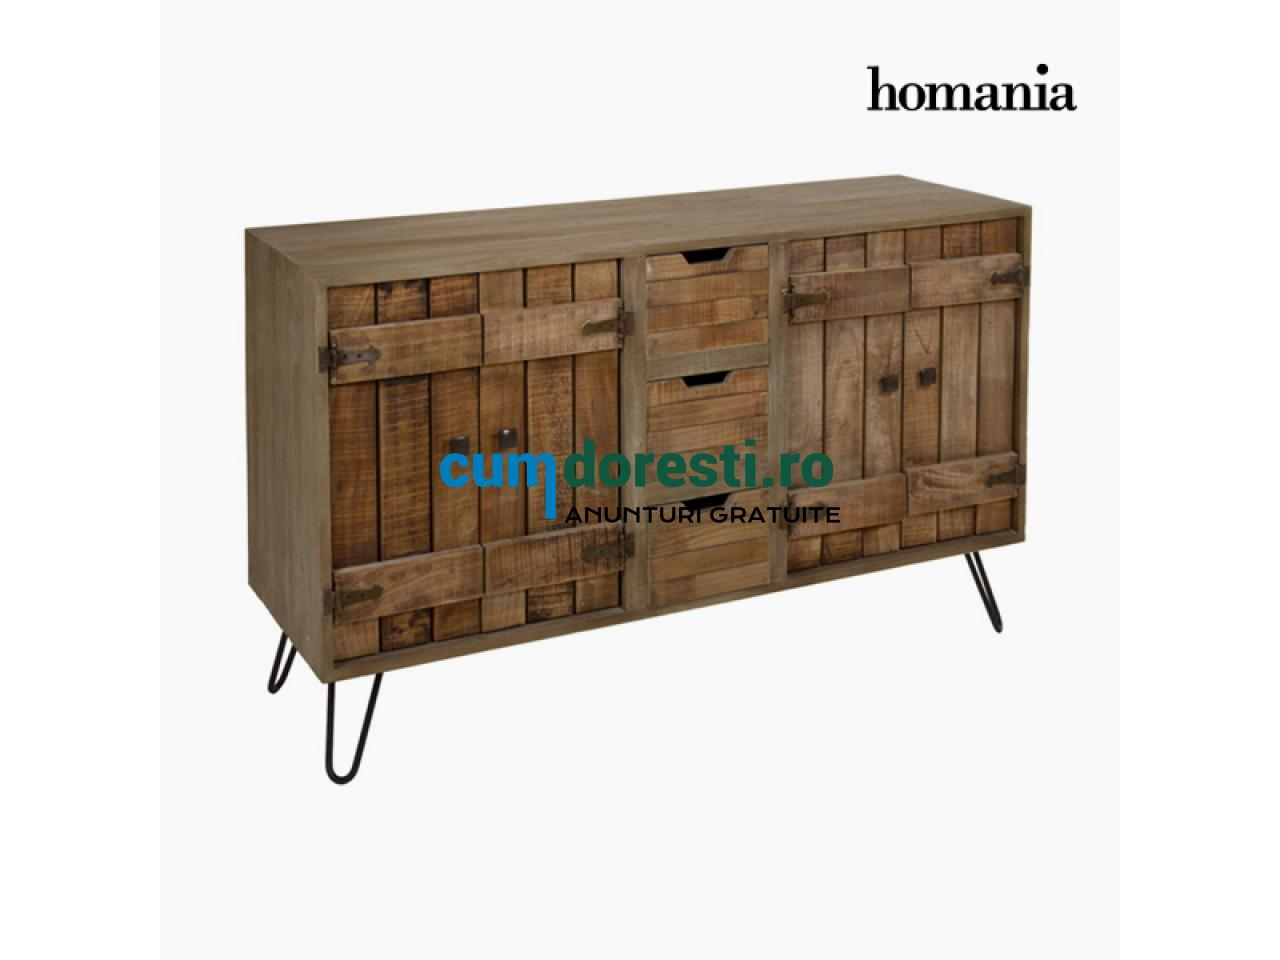 Servantă Lemn mindi (140 x 45 x 87 cm) - Be Yourself Colectare by Homania